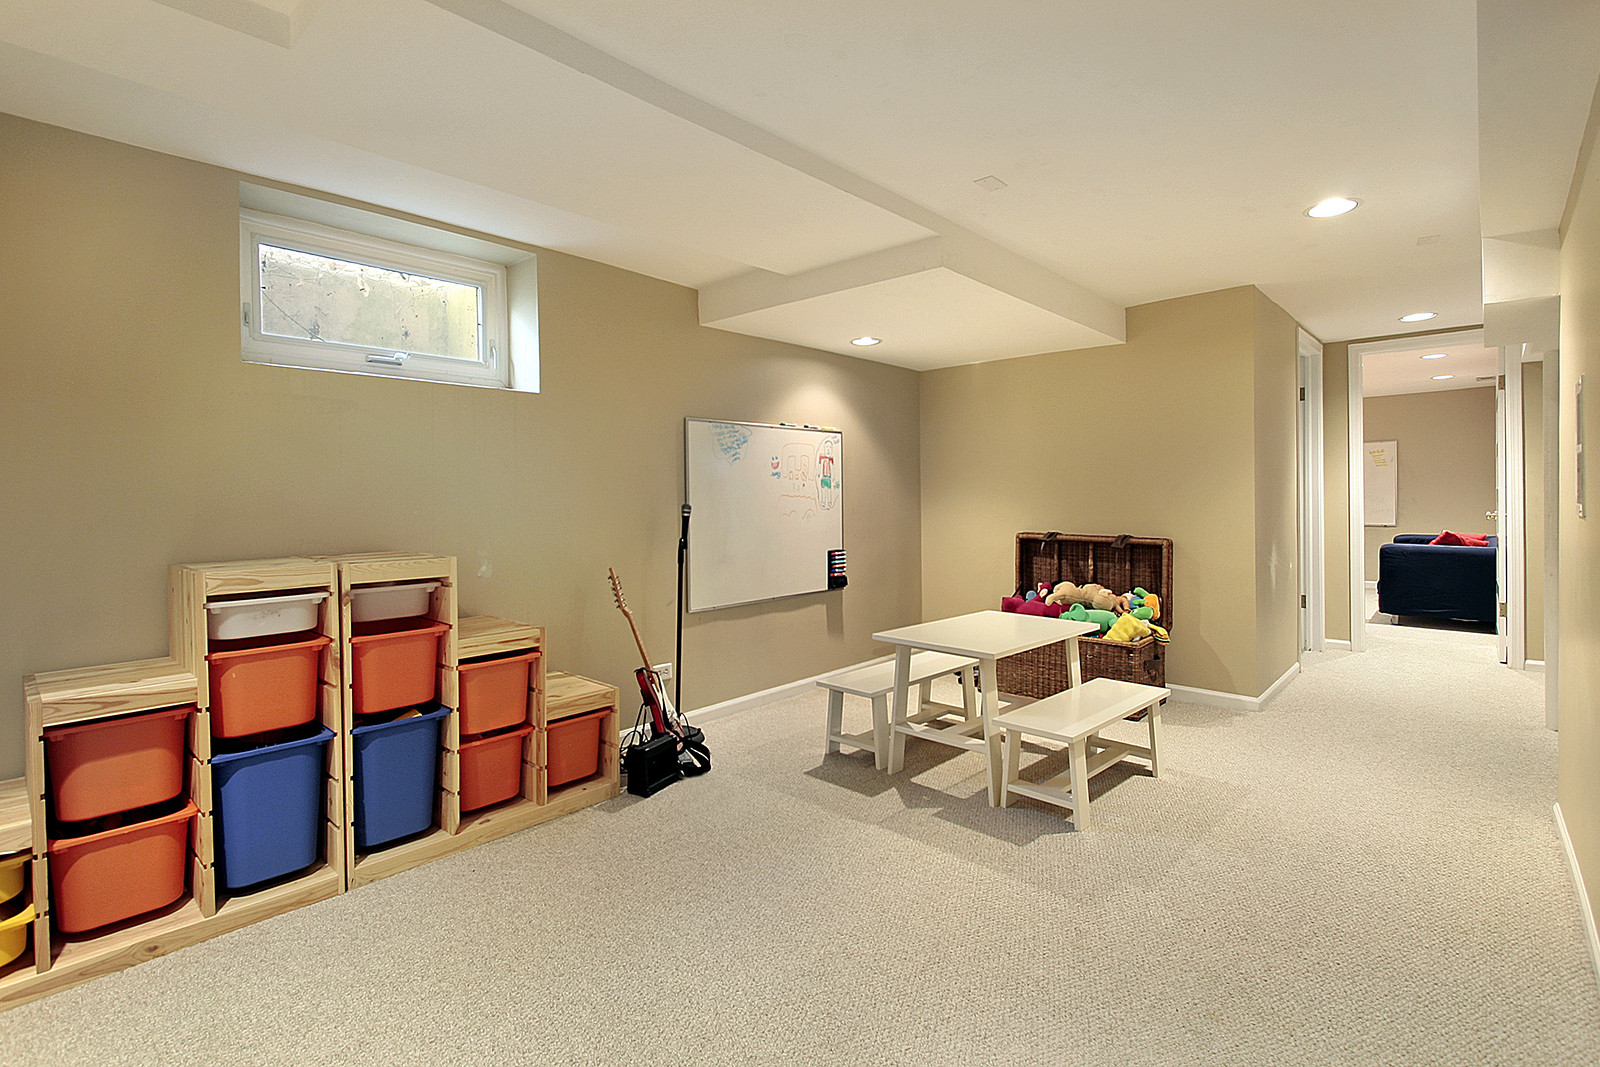 Best ideas about Finishing A Basement Ideas . Save or Pin Not Sure What to do With Your 'Blank Canvas' Basement Now.